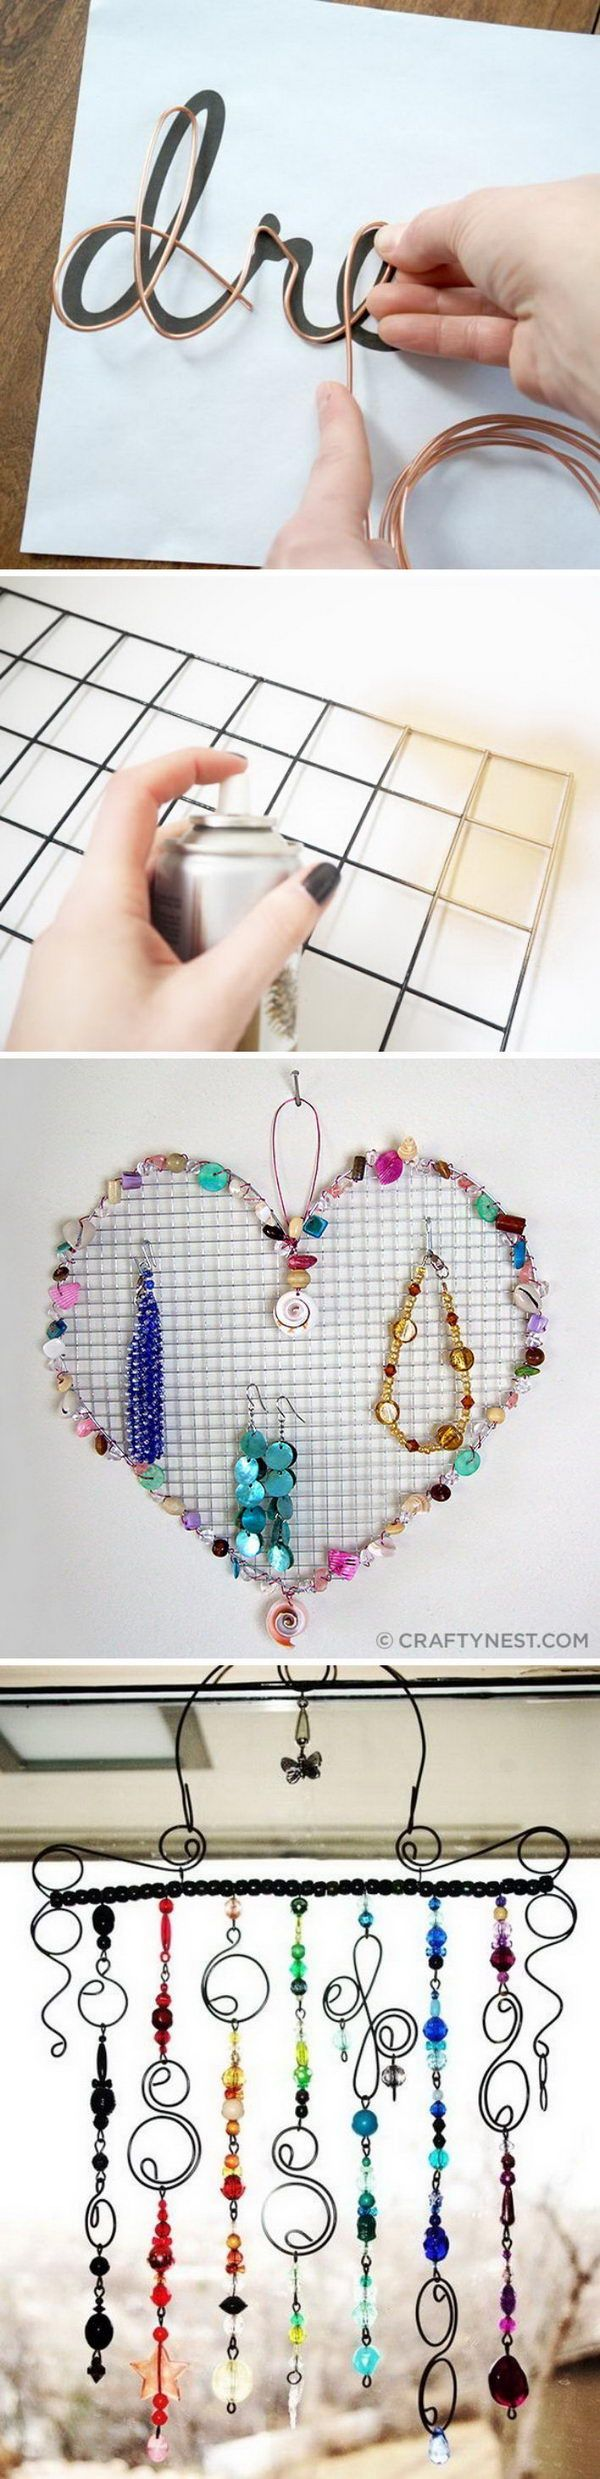 Lots of creative DIY wire projects.